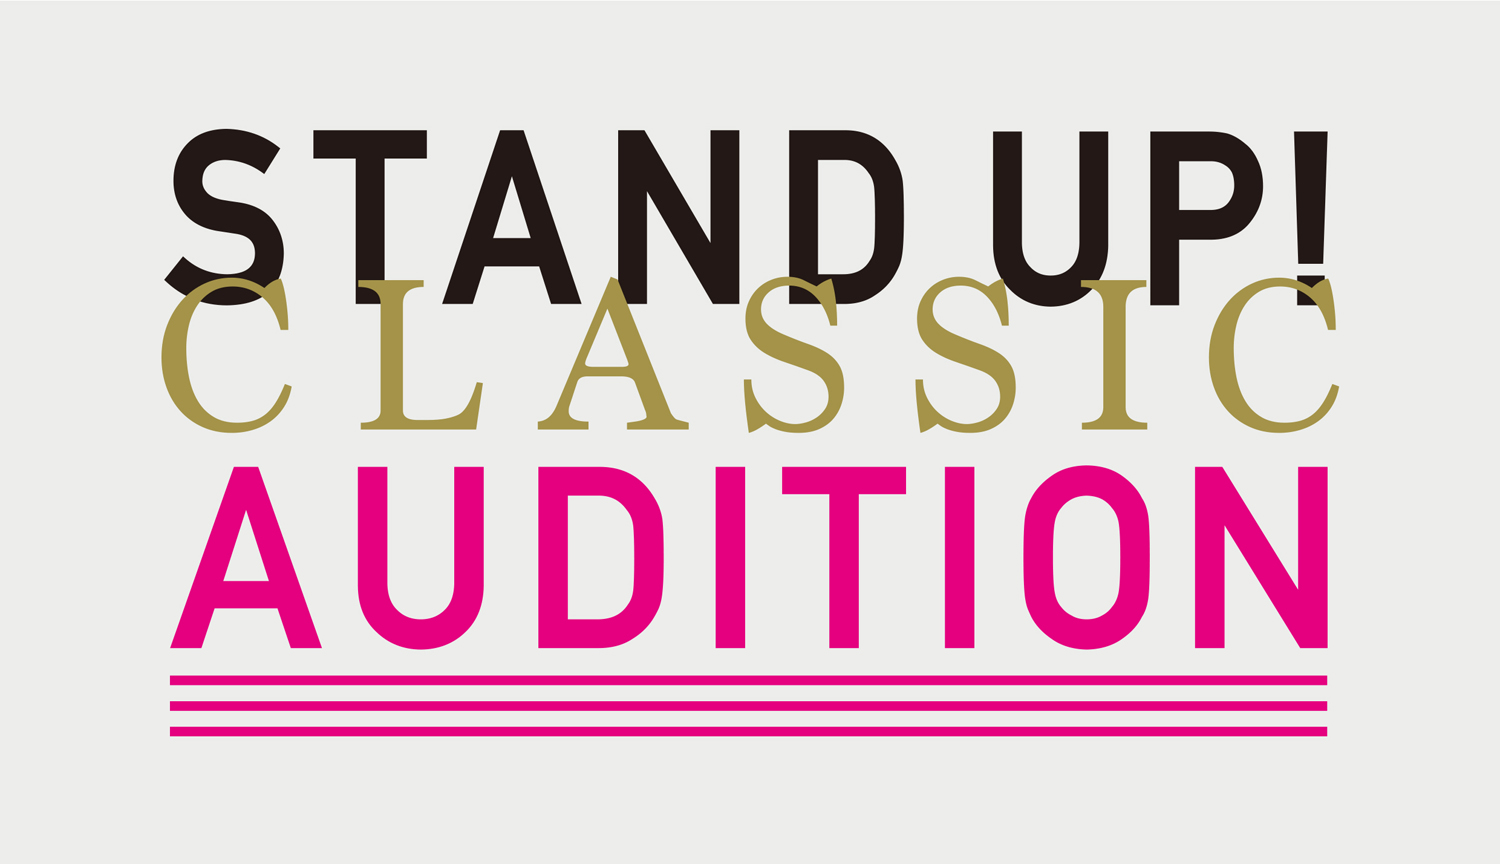 standupclassicaudition_logo